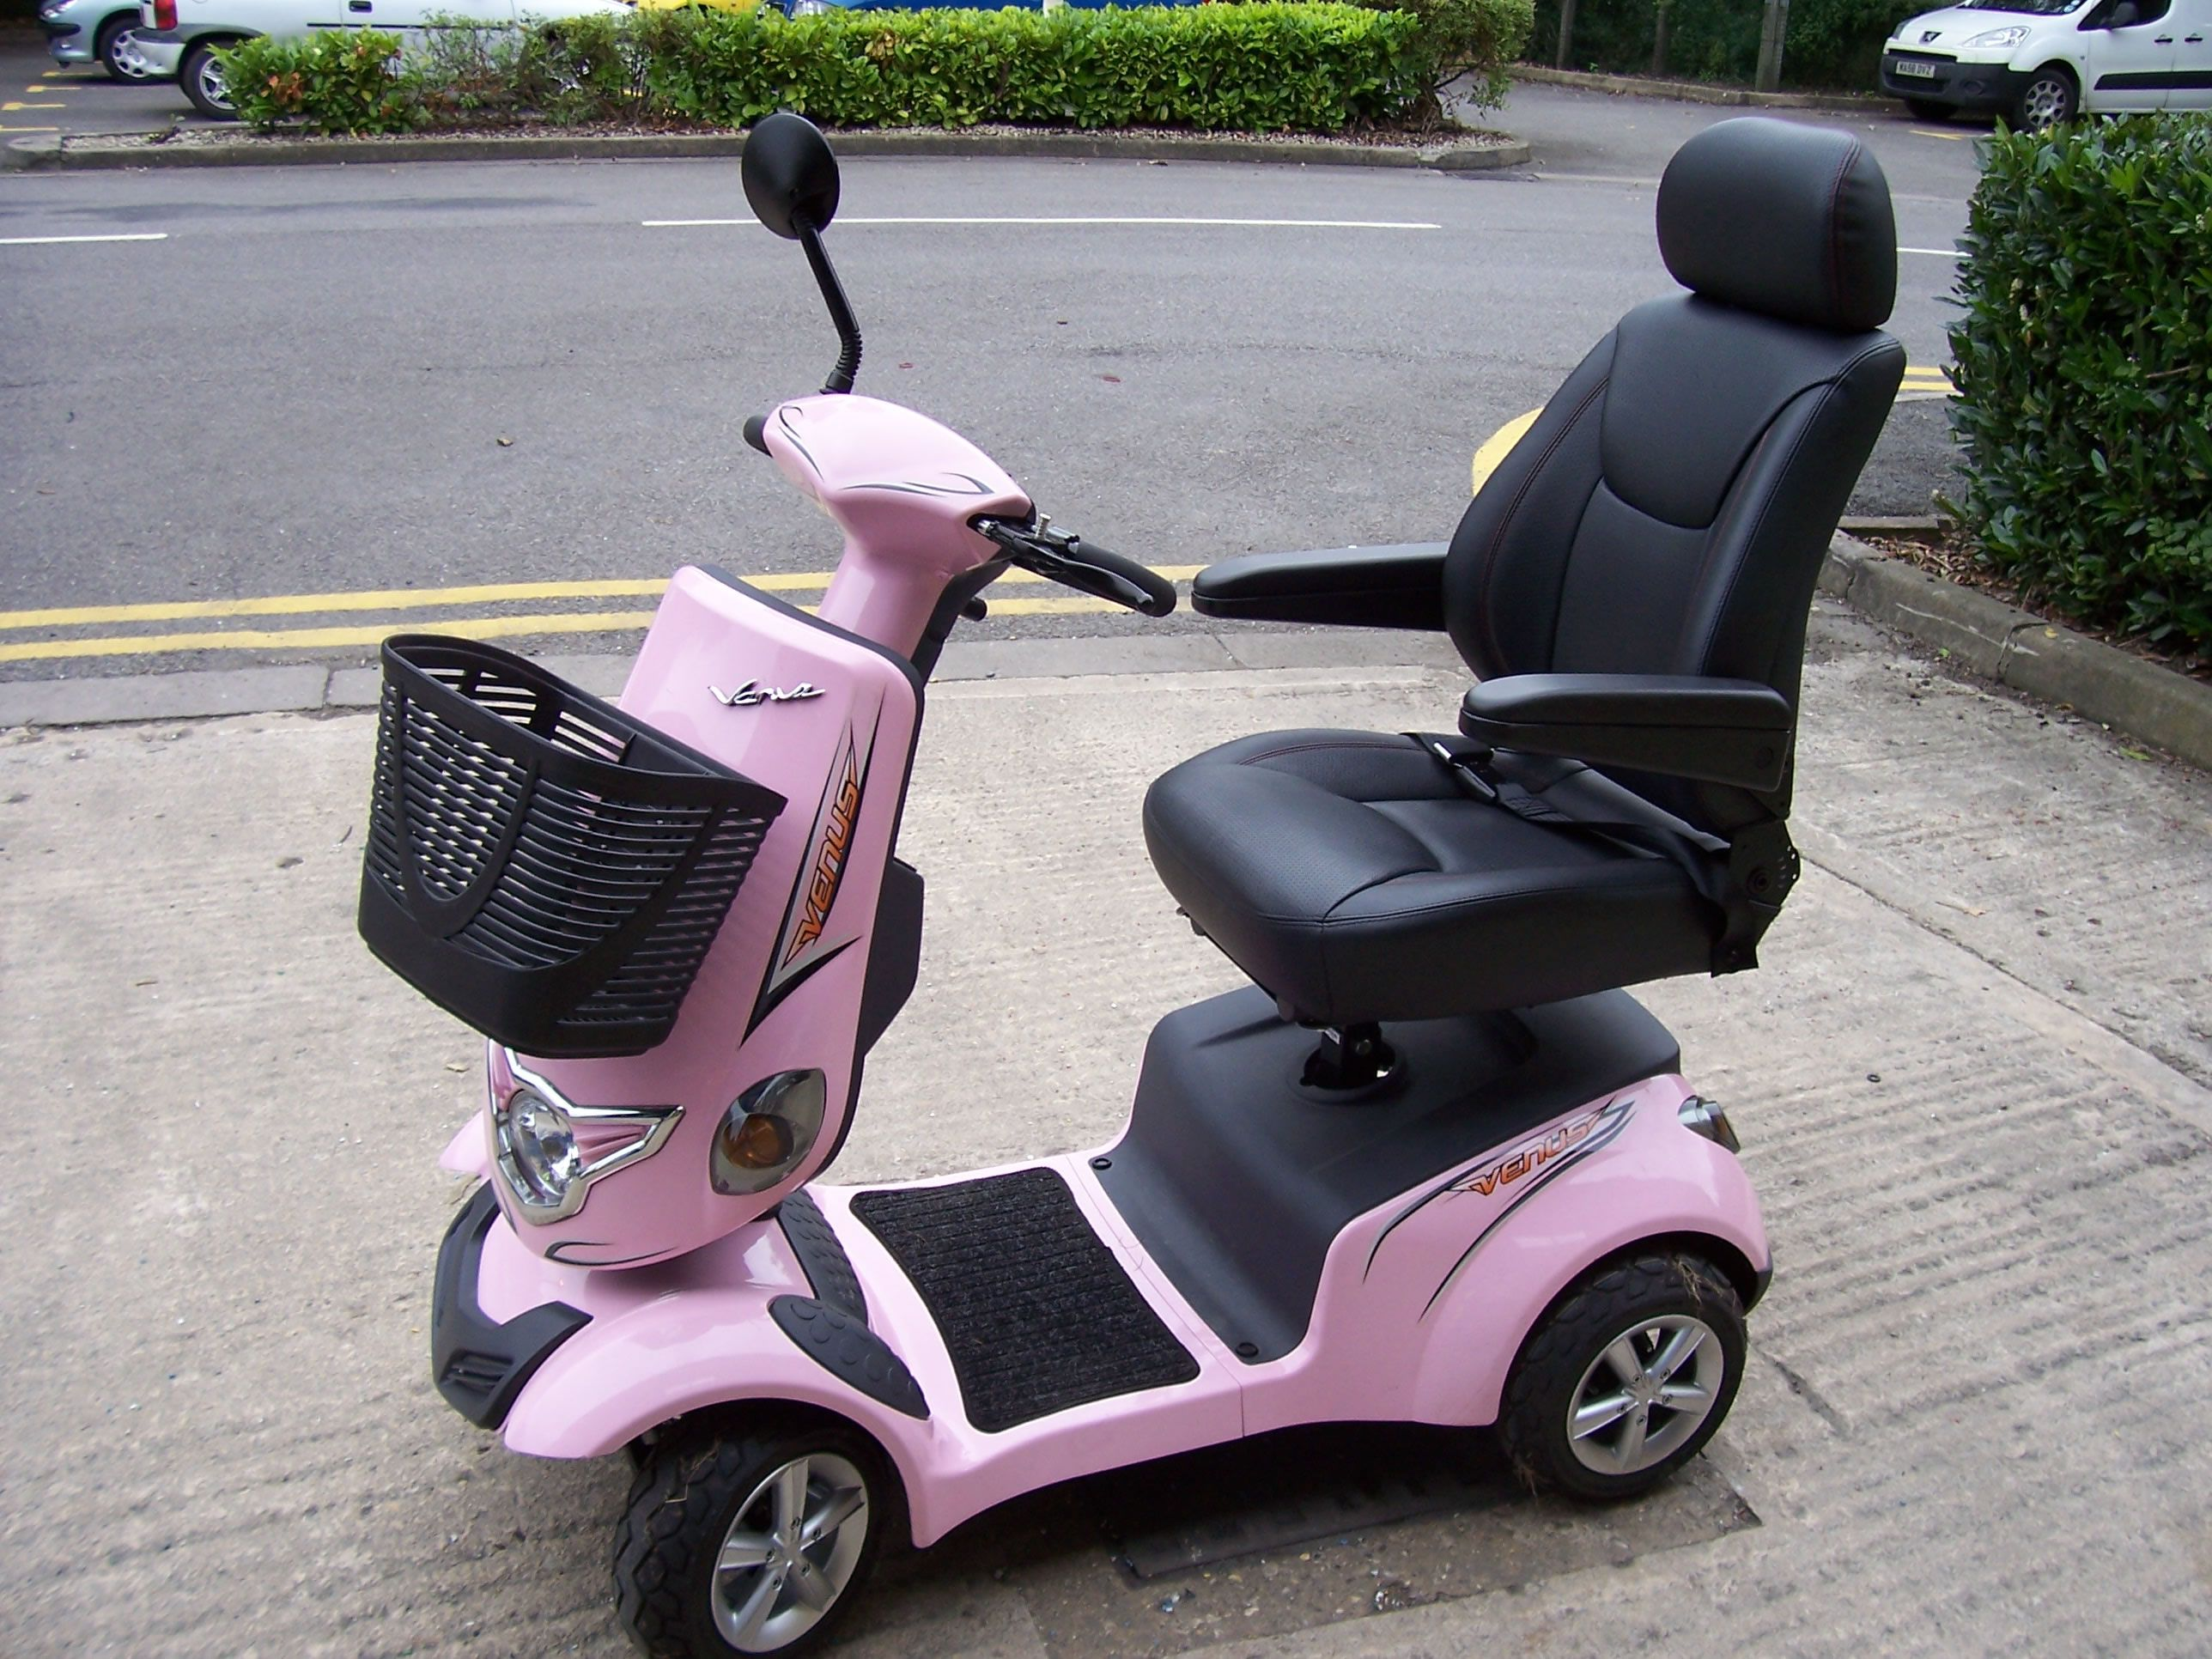 power chair car carrier one and half sleepers pink mobility scooter motability scooters powerchairs